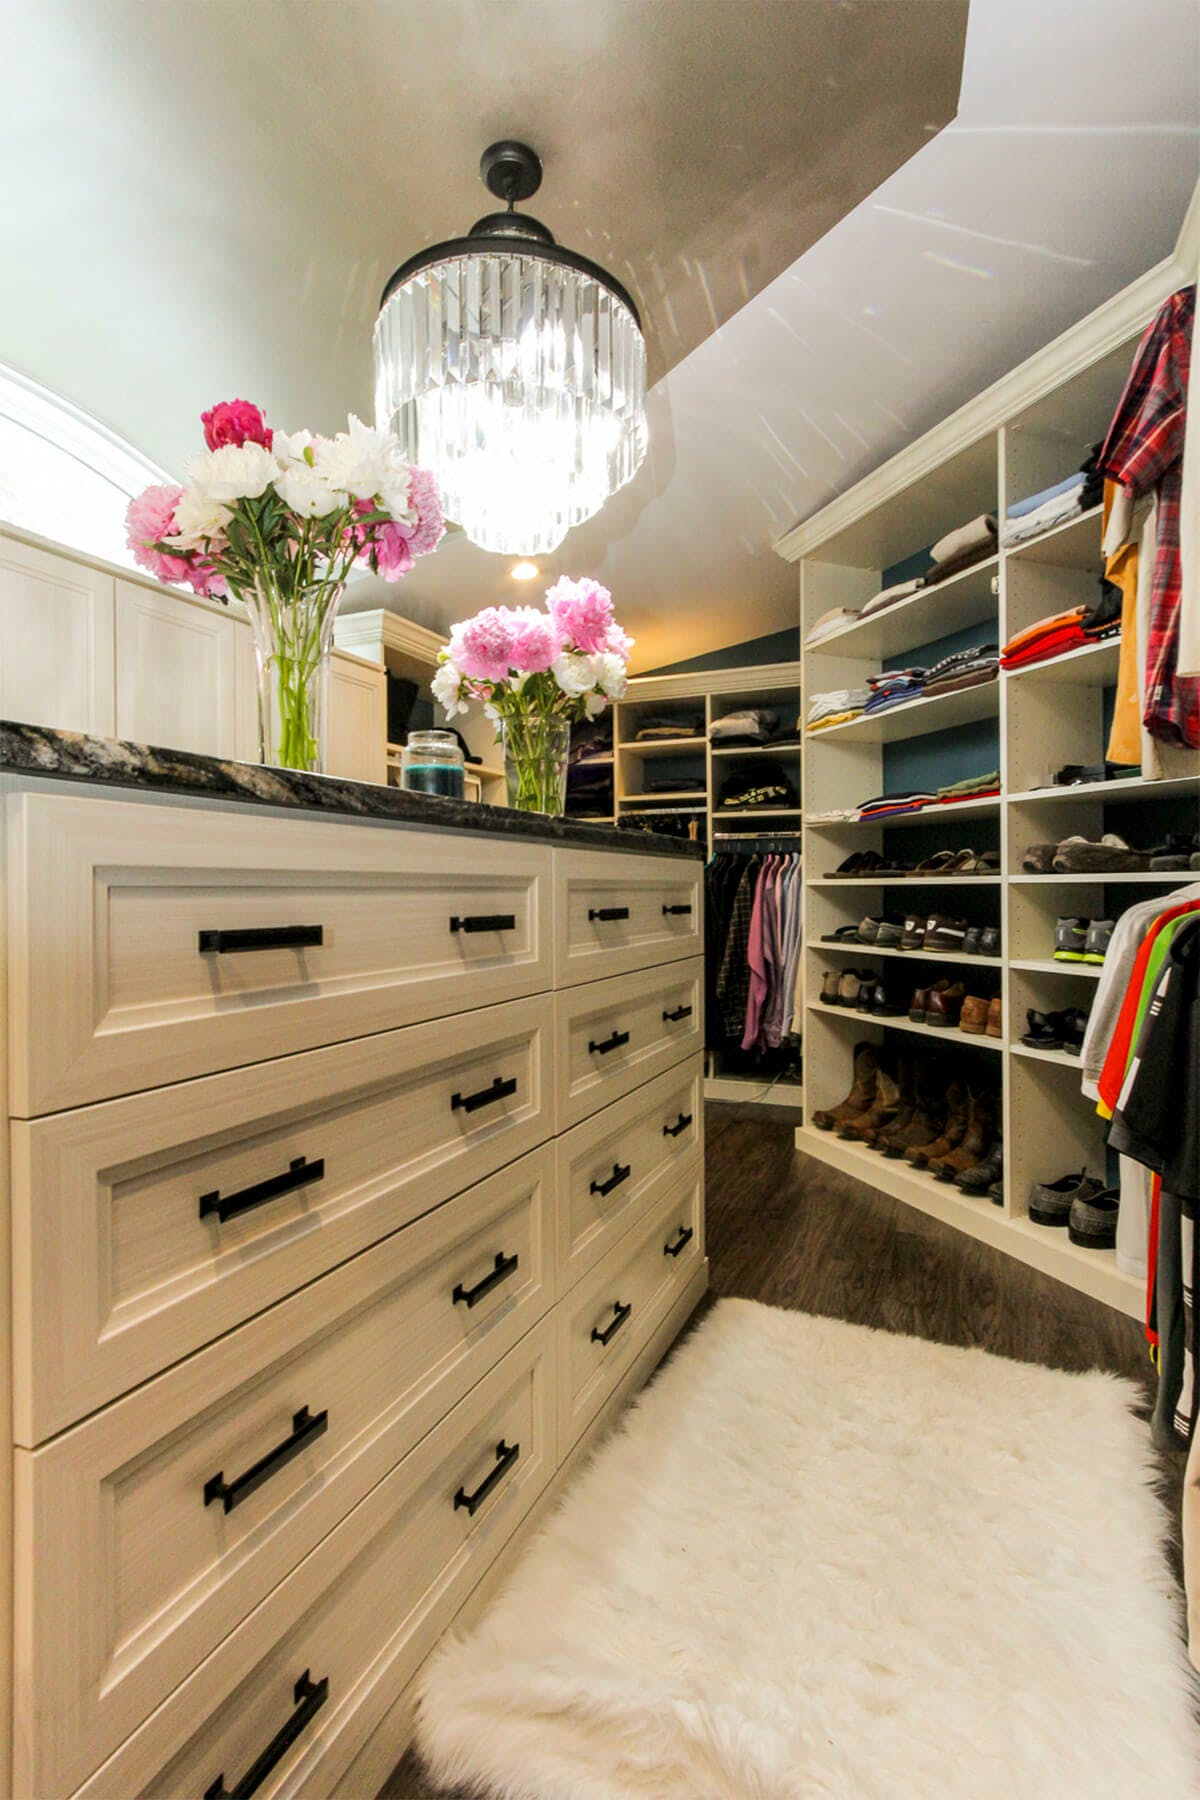 Some Of Our Work At Closet Factory / Murphybed Lifestyles